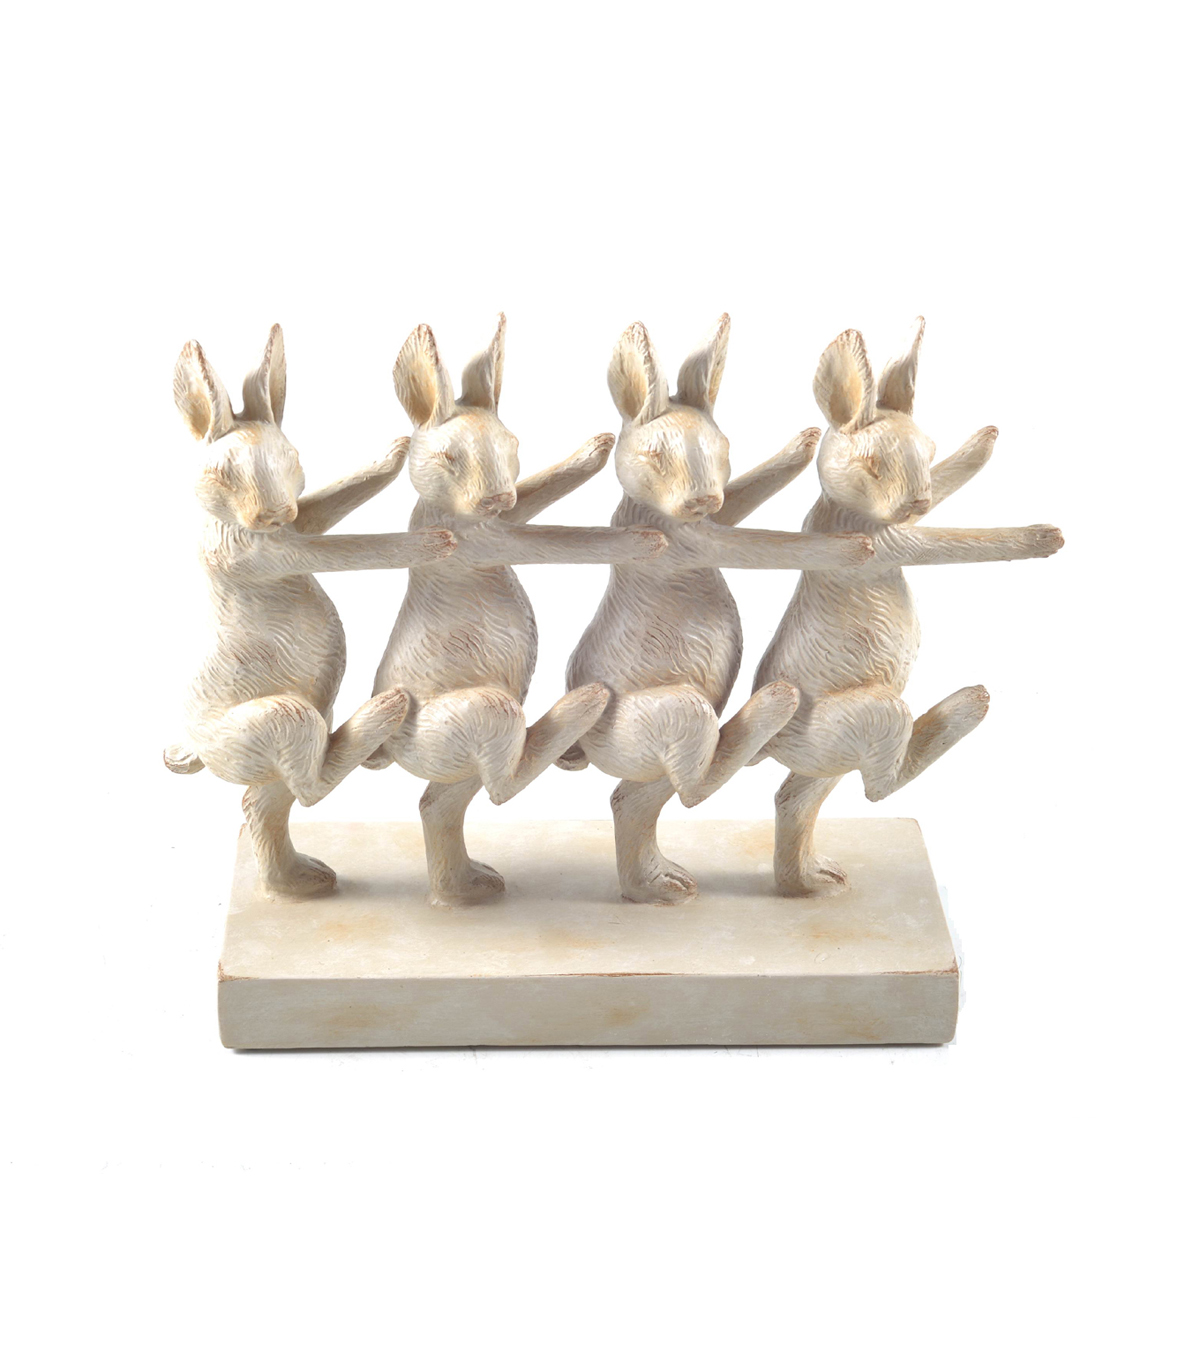 Dancing Easter Bunnies Table Top Decor